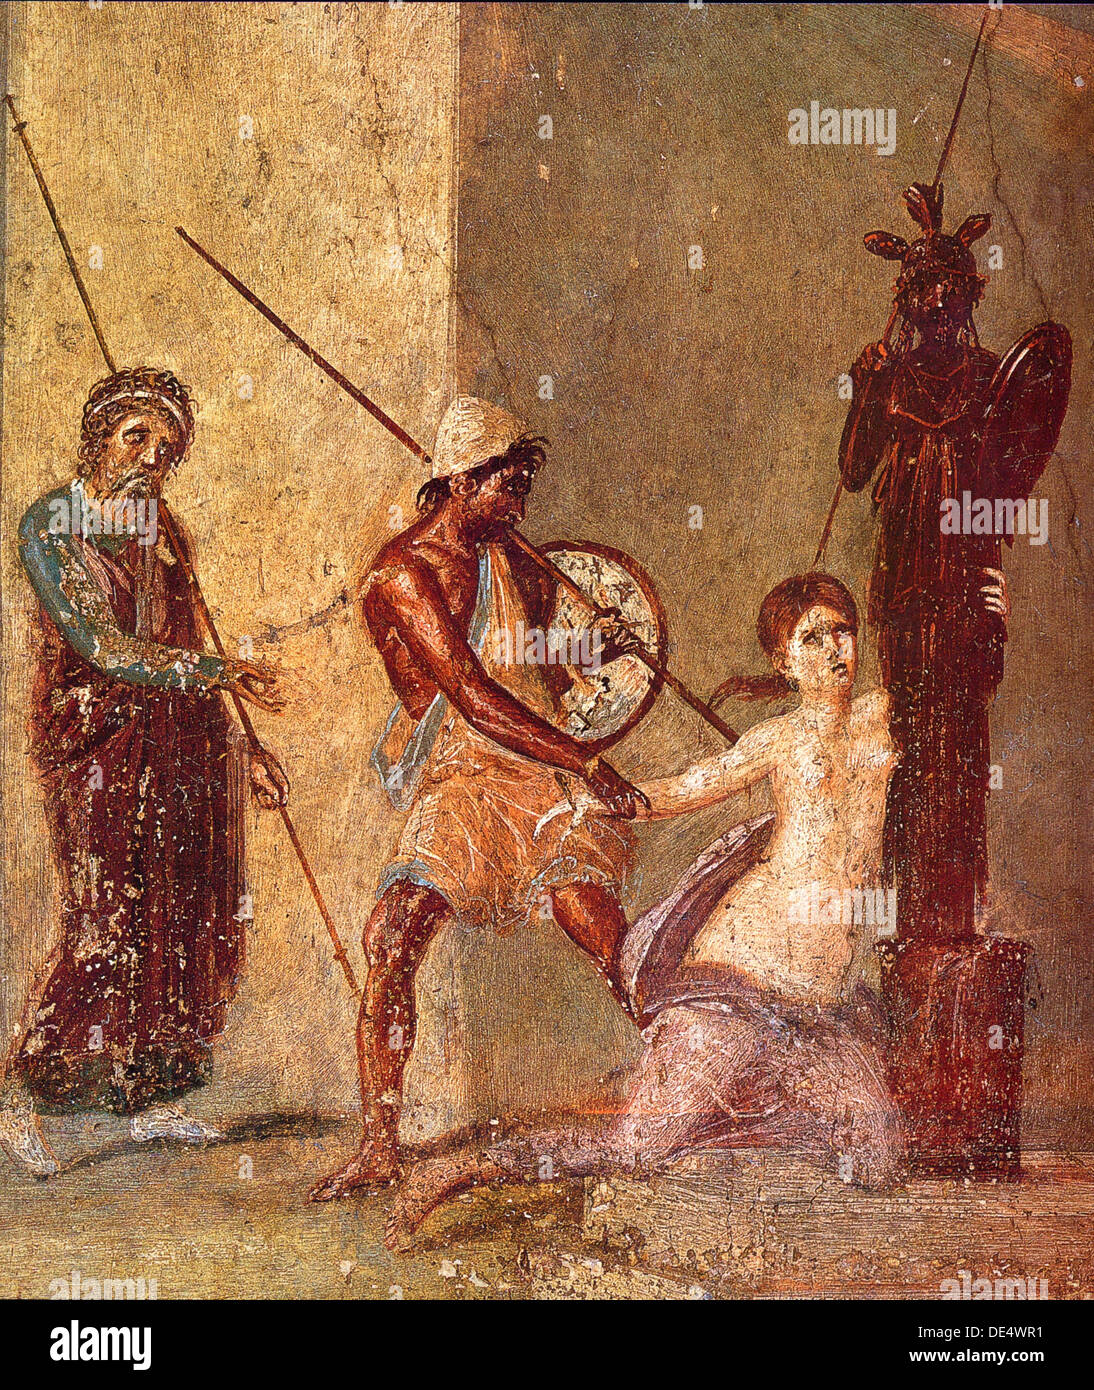 roman fresco wall painting from the sacrarium of the temple of ajax the lesser drags cassandra away from the xoanon 1st h 1st cen